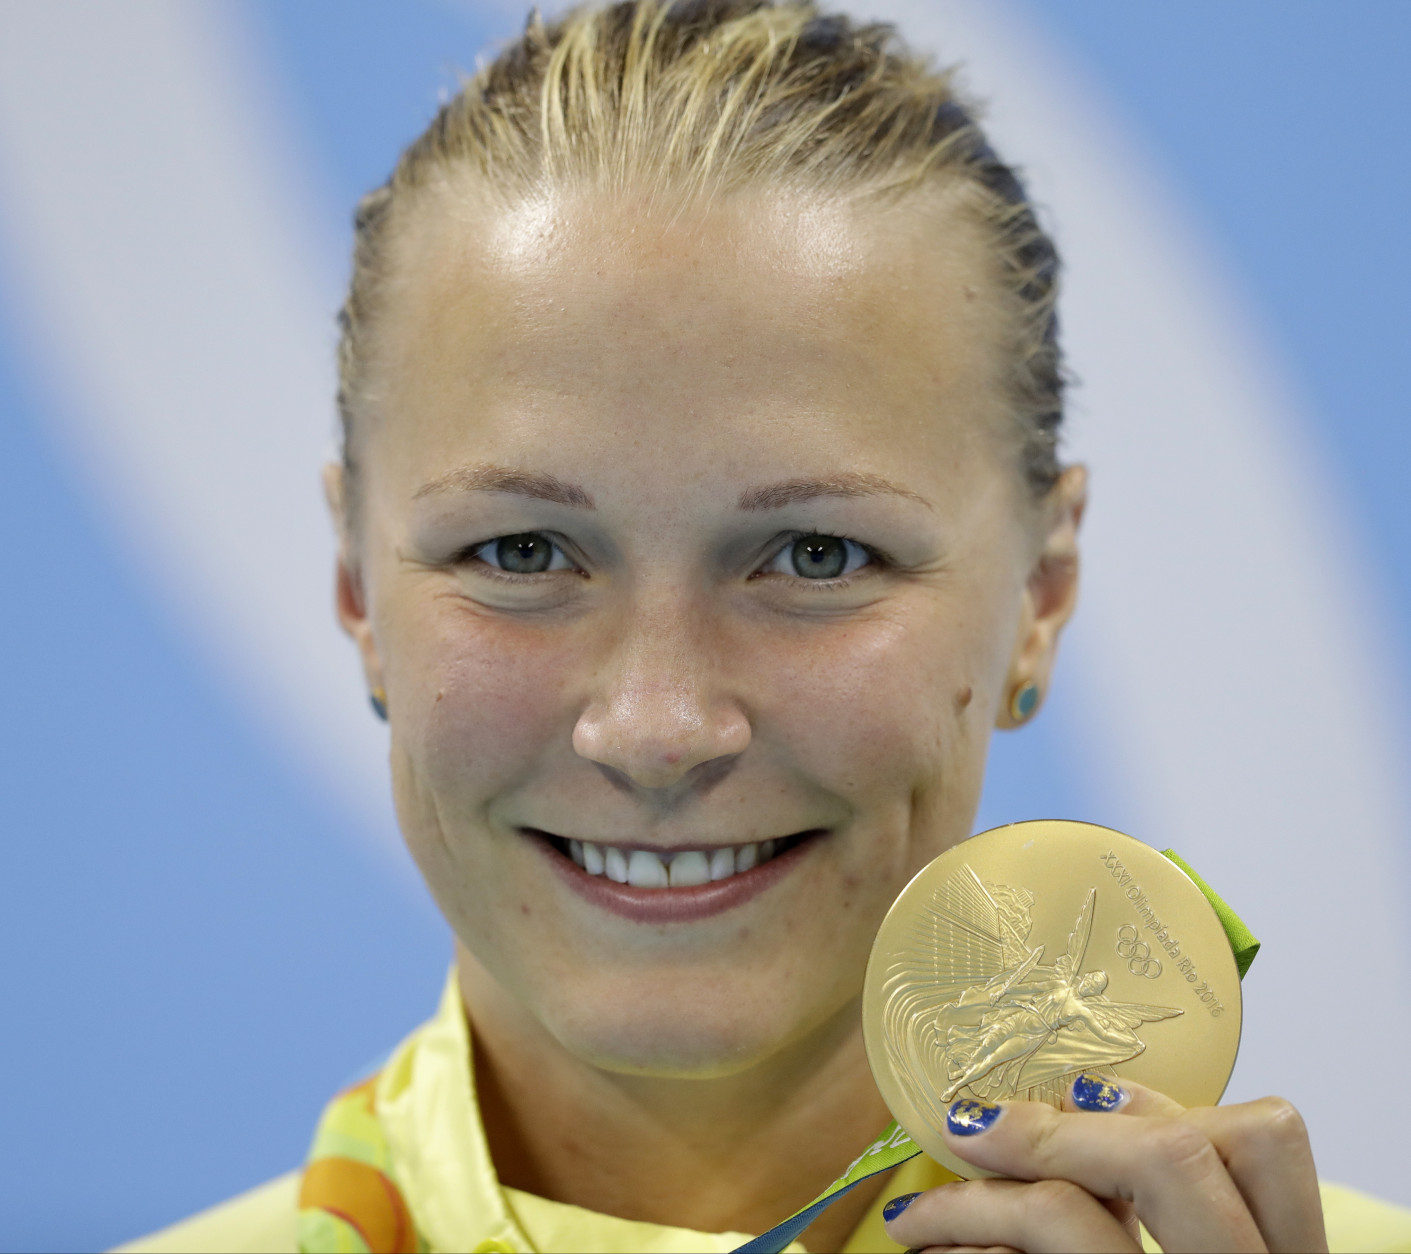 Sweden's Sarah Sjostrom shows off her gold medal, after setting a new world record, during the medal ceremony for the women's 100-meter butterfly final during the swimming competitions at the 2016 Summer Olympics, Sunday, Aug. 7, 2016, in Rio de Janeiro, Brazil. (AP Photo/Michael Sohn)s